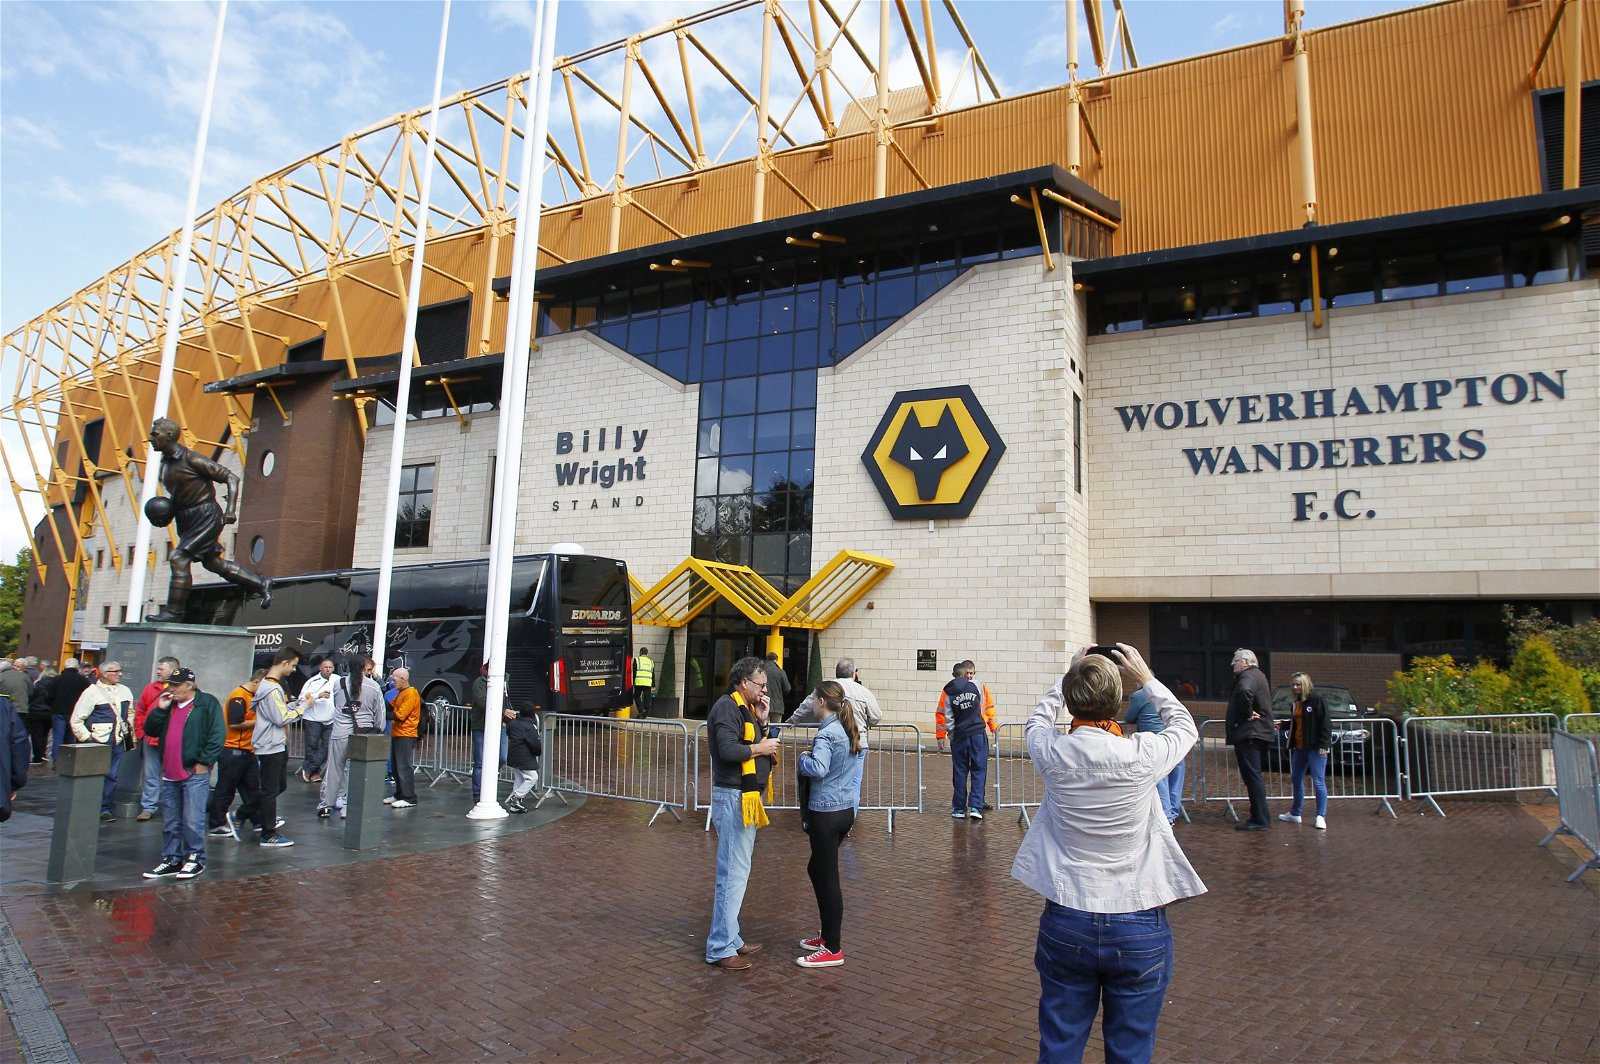 Wolves Molineux - Gap plugged? Risky signing? – Ranking Wolves' incoming transfers so far